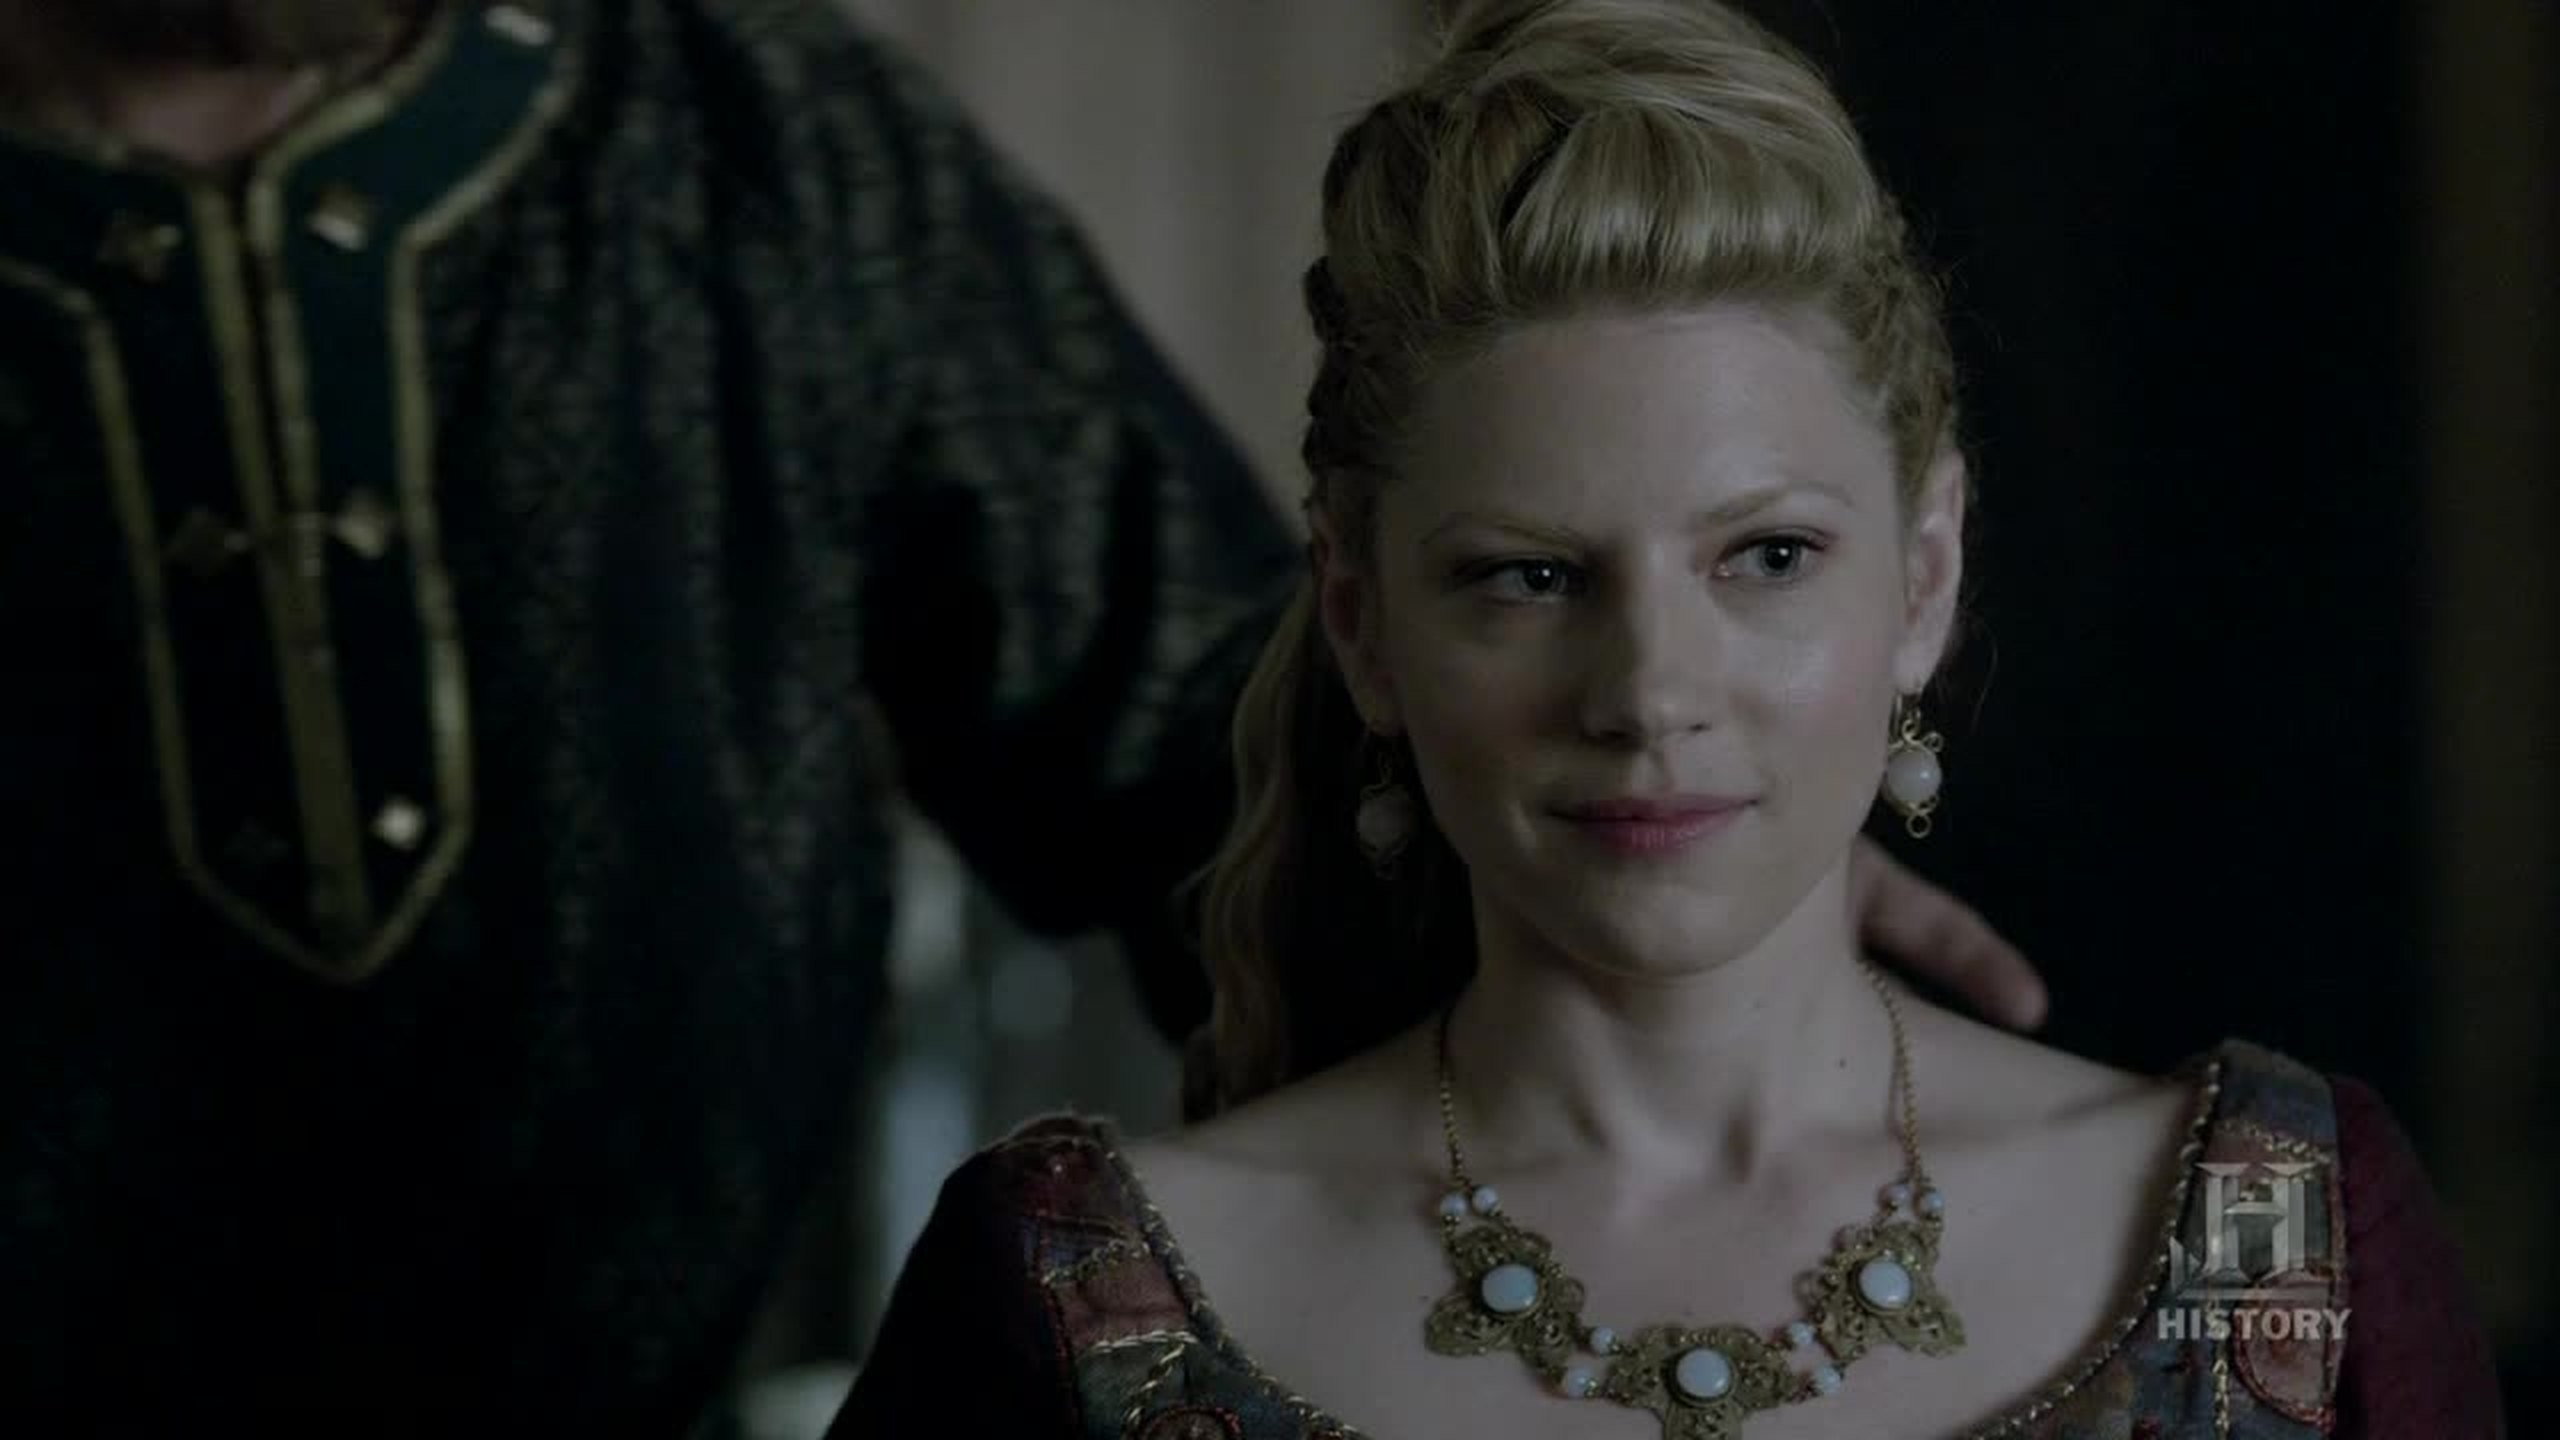 Lagertha is better with a sword in her hand than with a necklace on her neck.